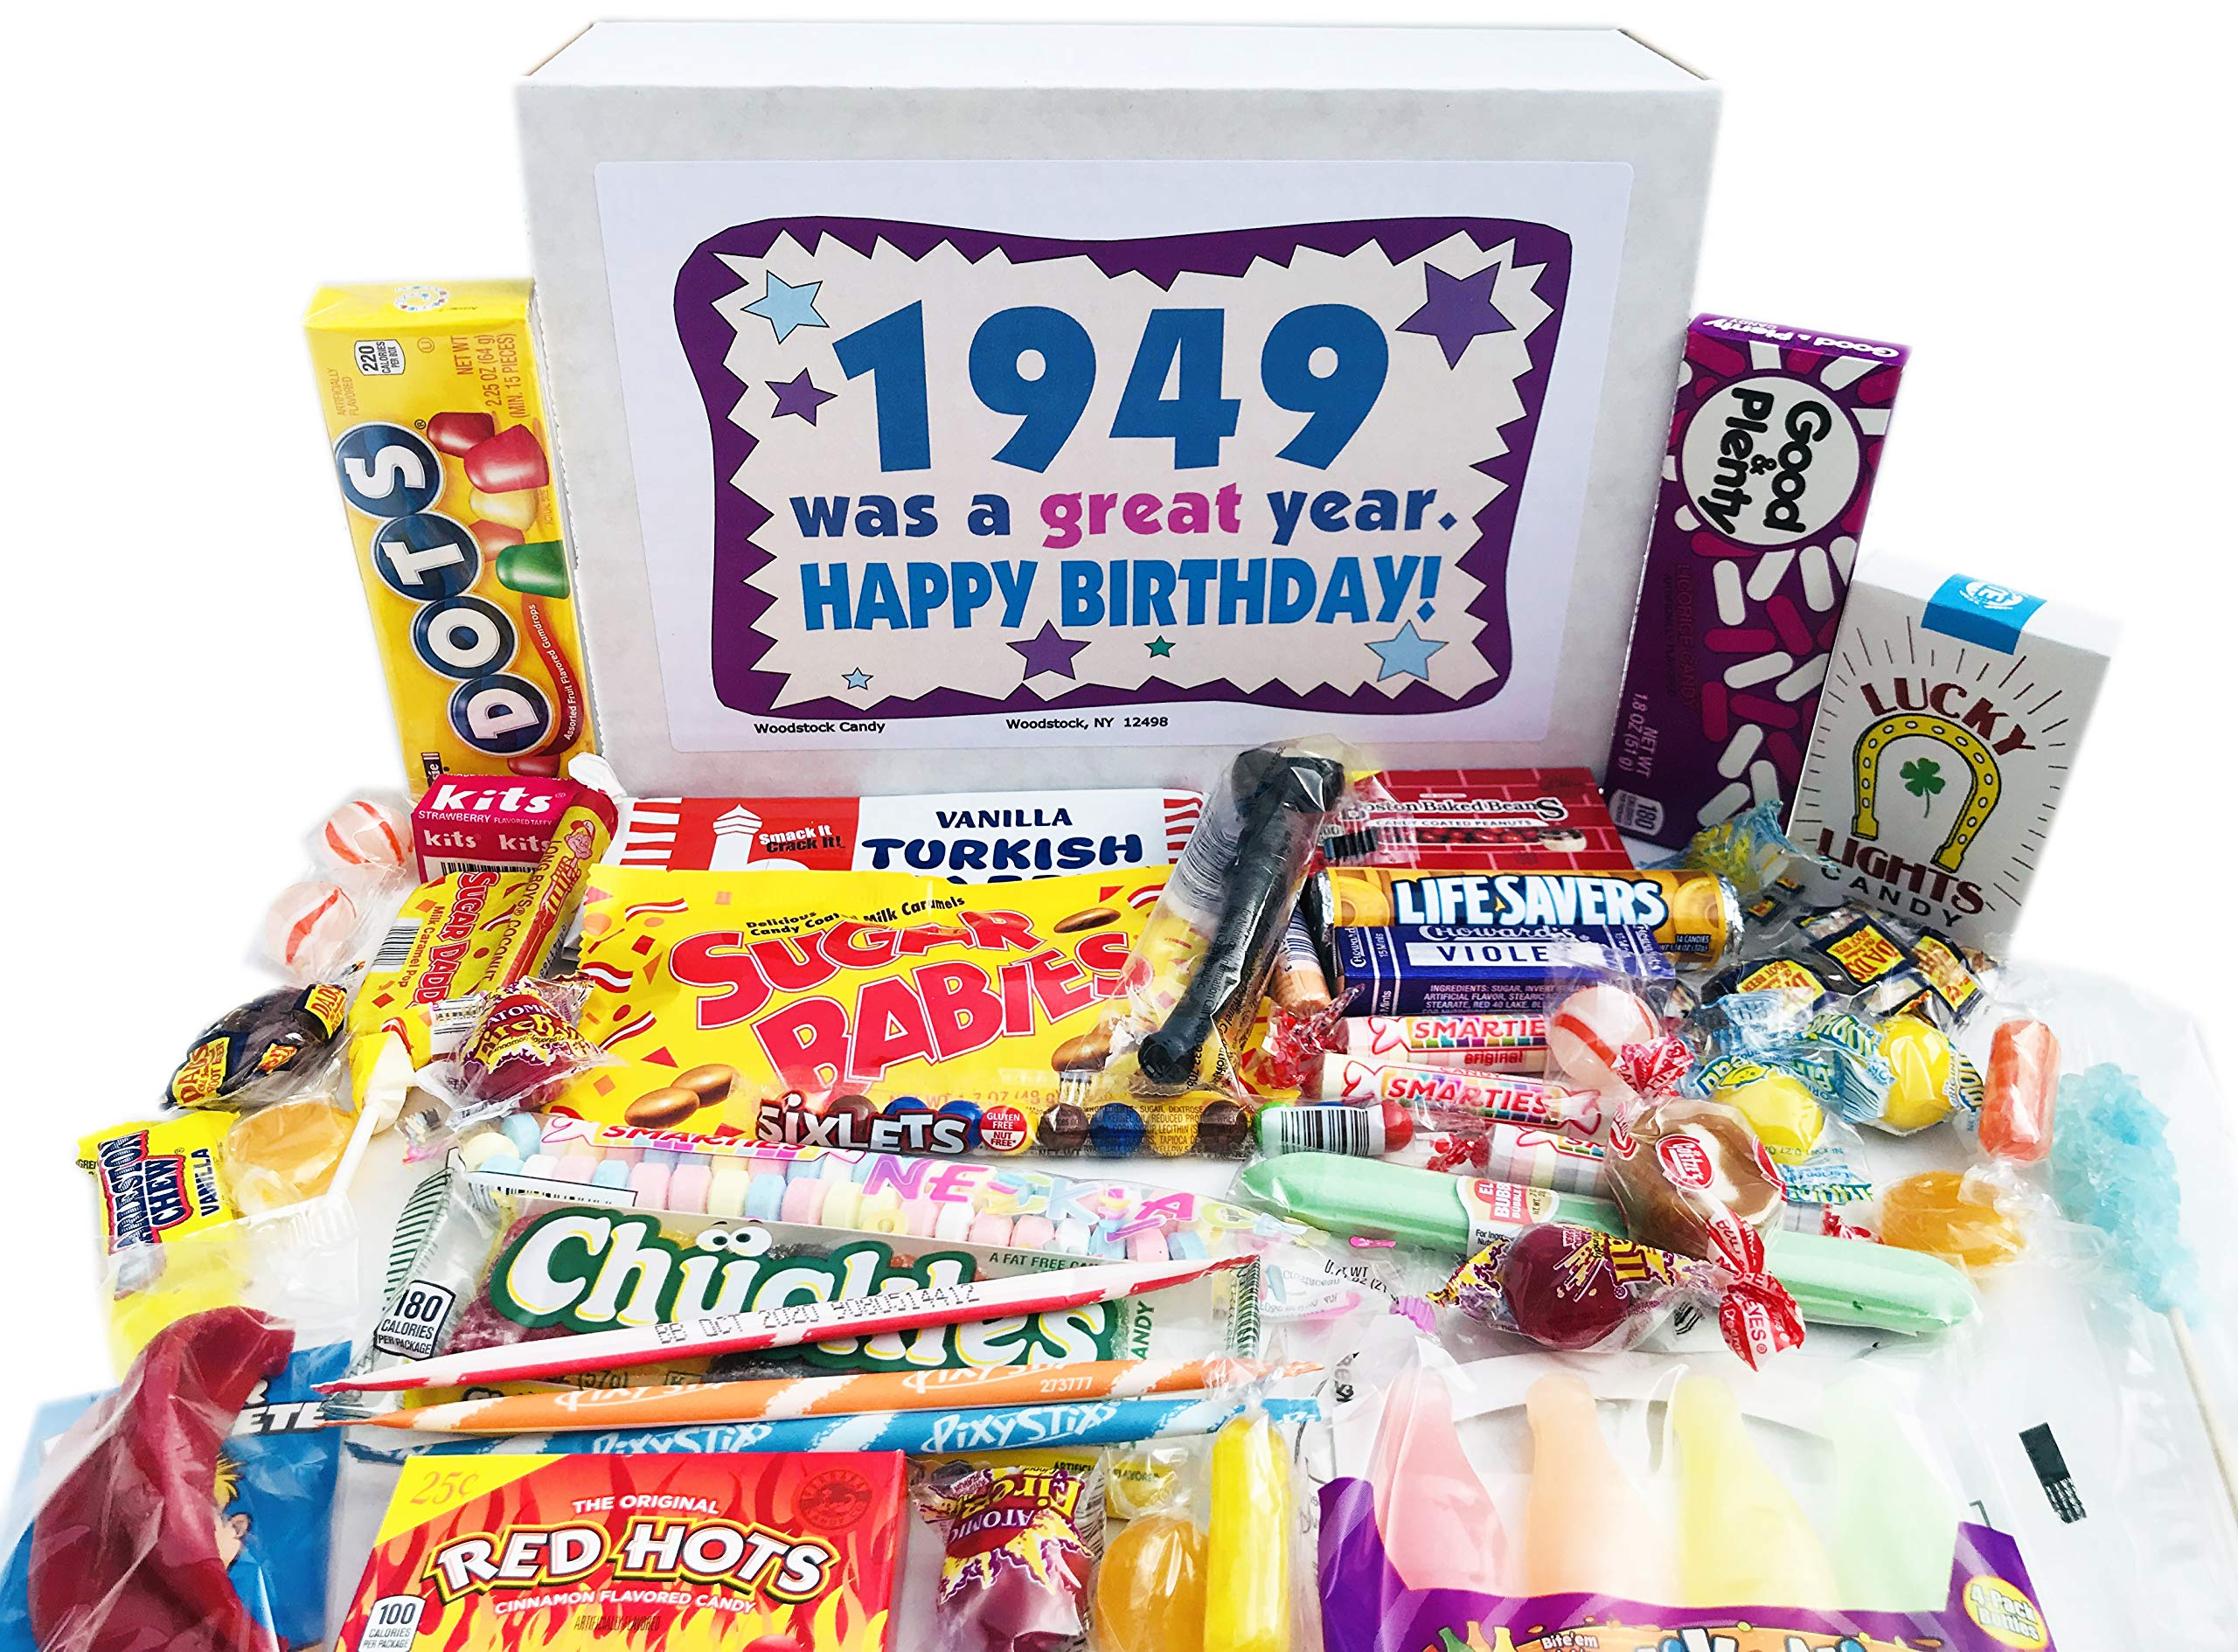 Woodstock Candy ~ 70th Birthday Gift Box of Retro Vintage Candy Assortment from Childhood for 70 Year Old Men and Women Born 1949 - Great Idea for Mom or Dad - Jr